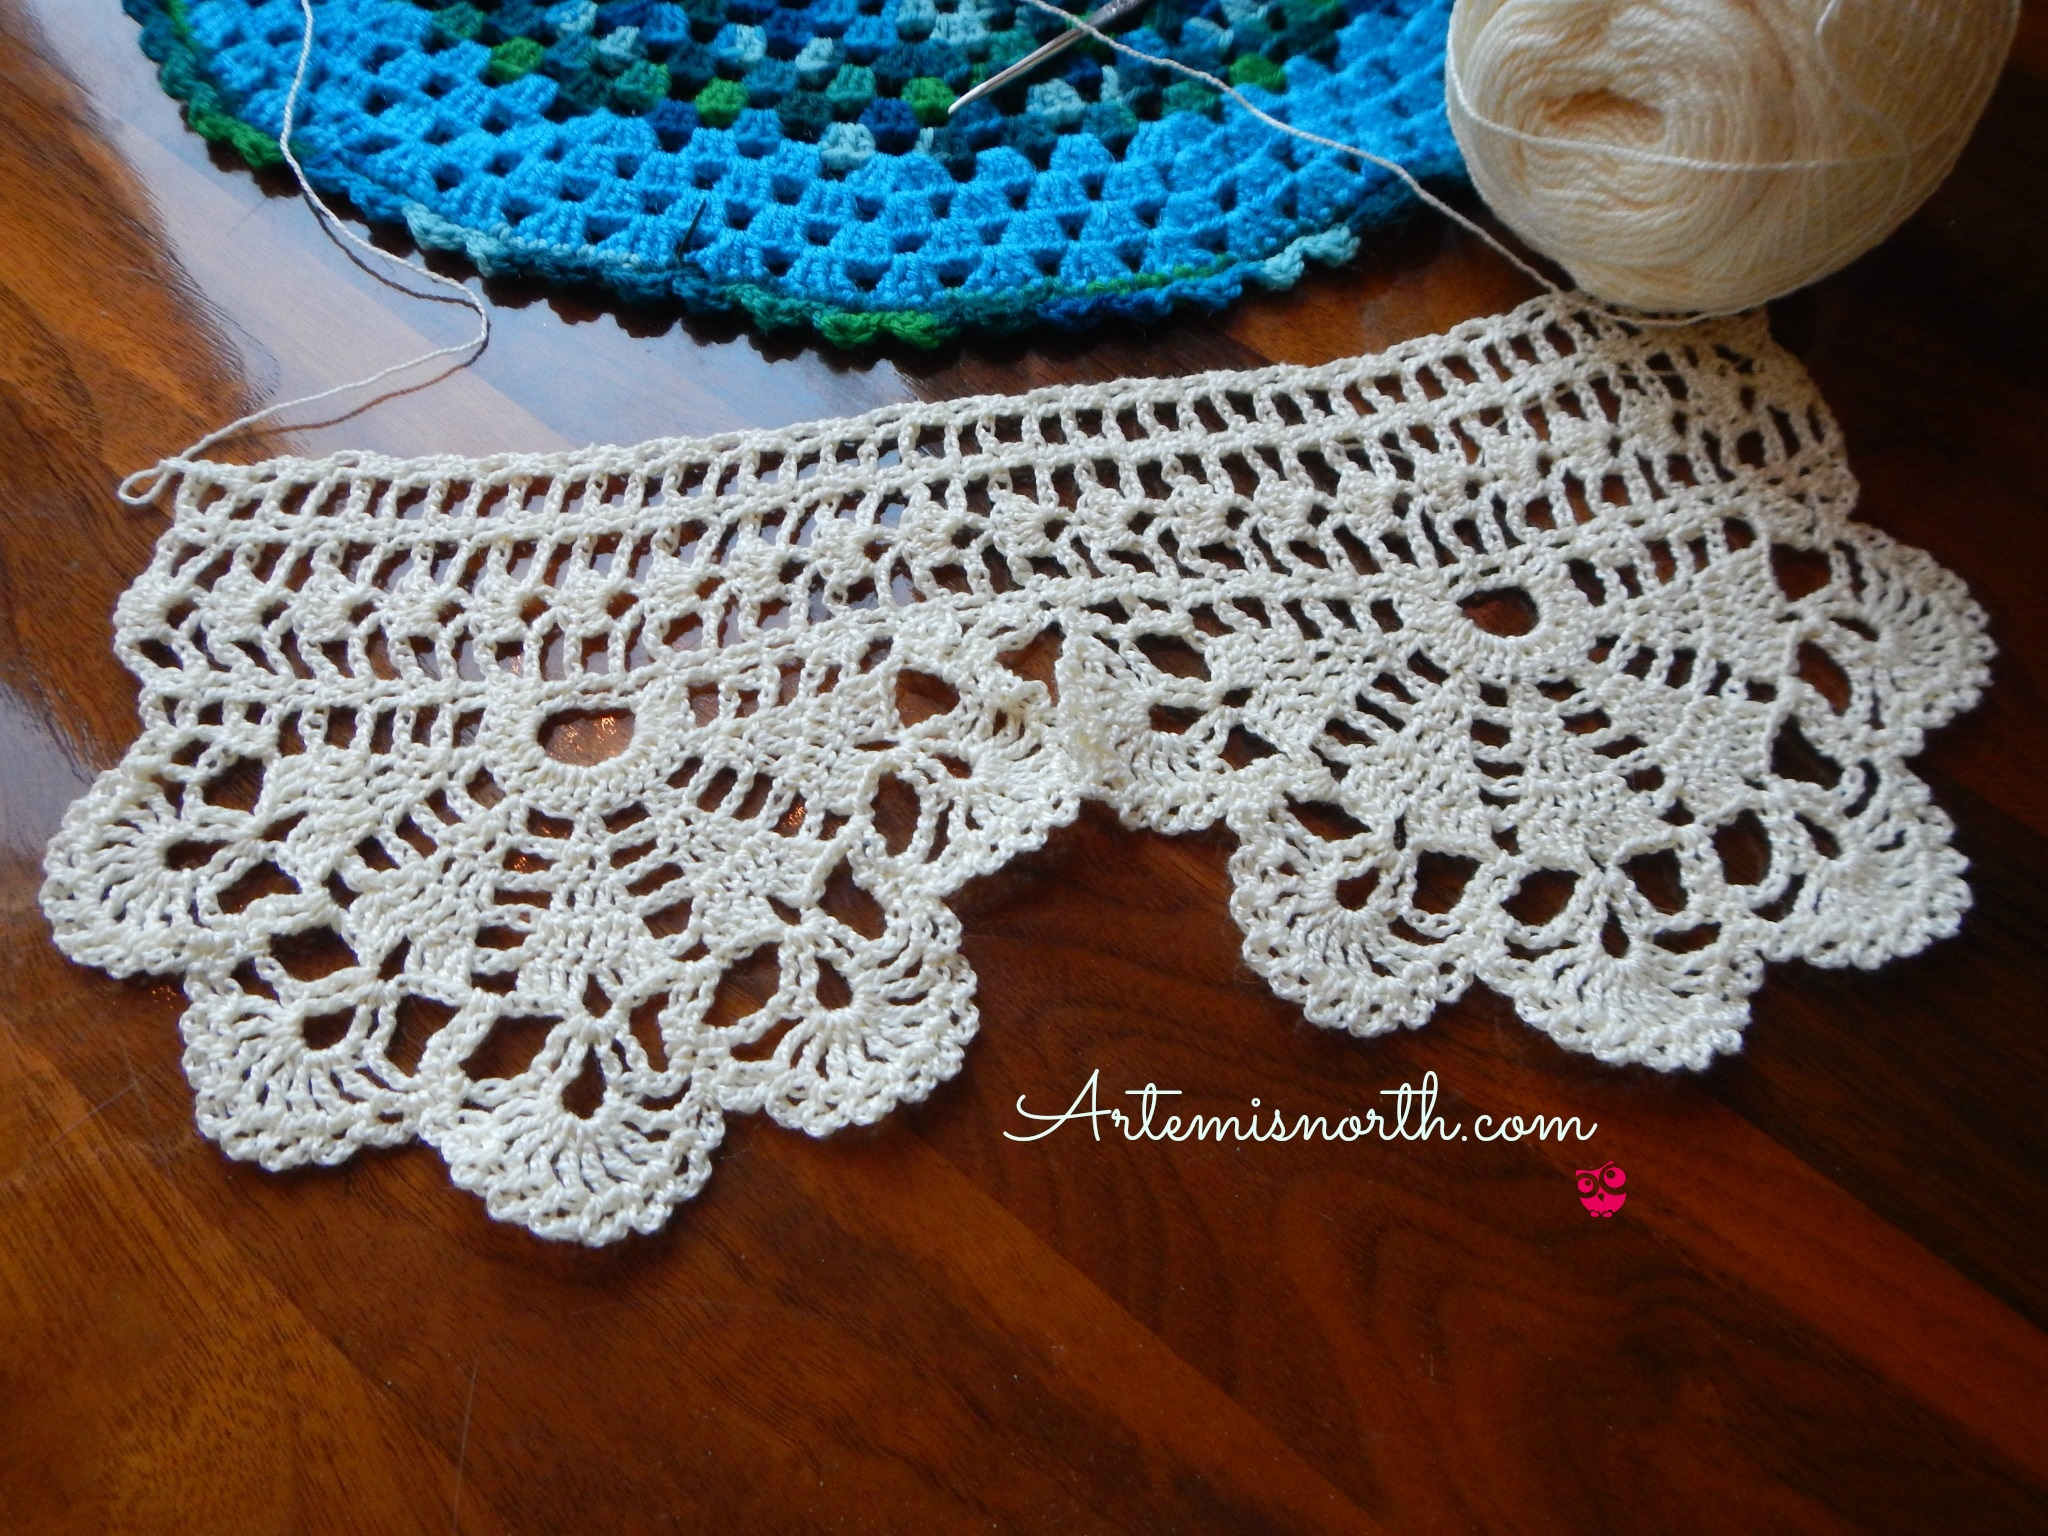 Crochet Lace Pattern For Edging : Free Crochet Lace Edging Patterns images